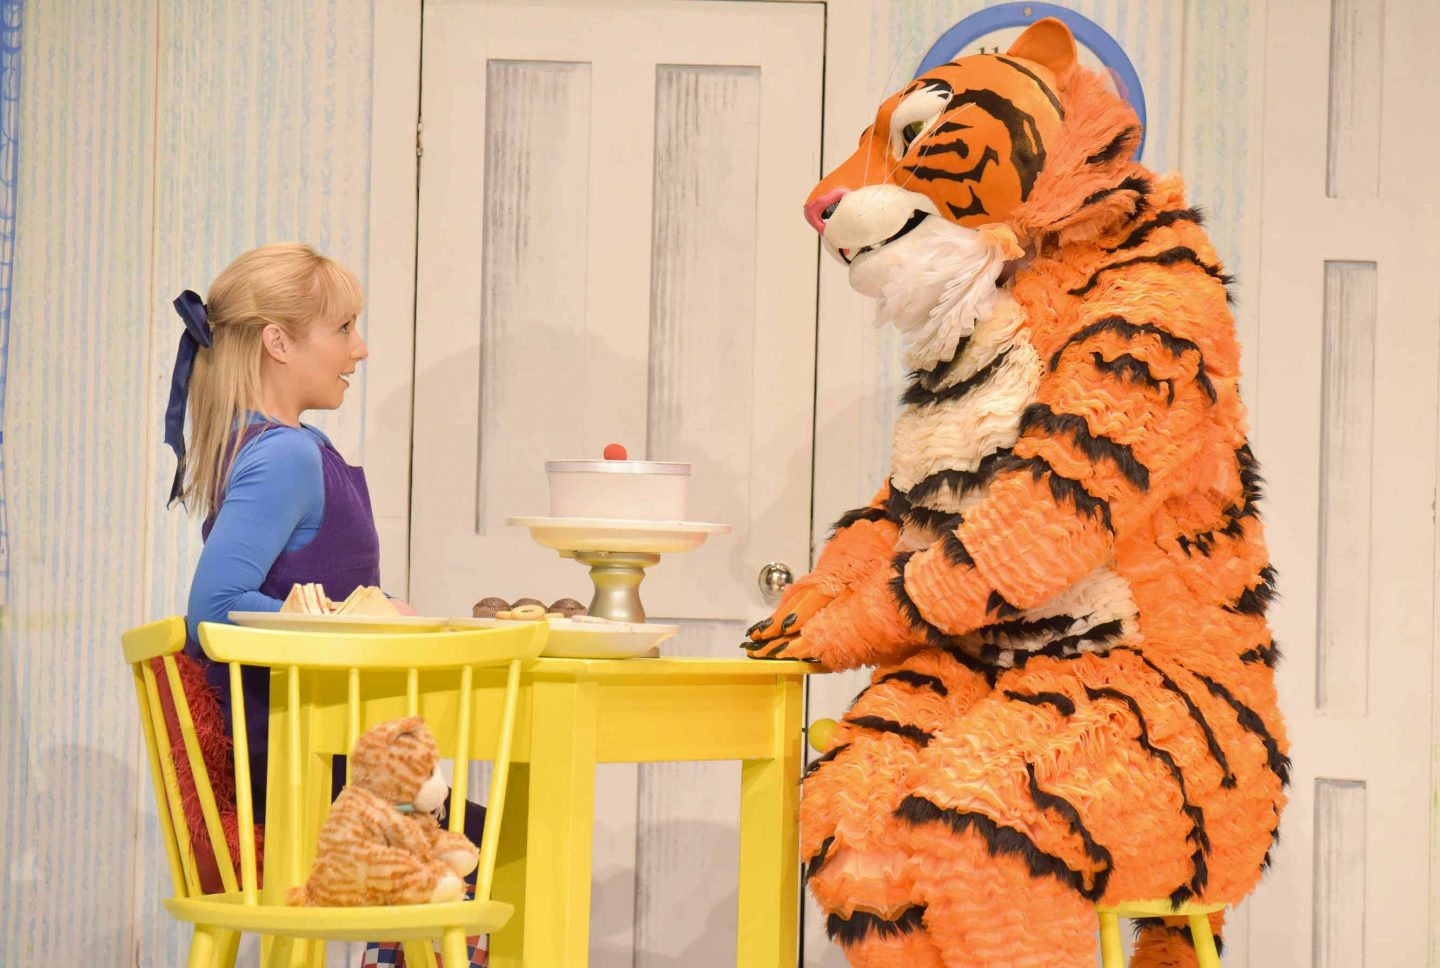 Review: The Tiger who came to tea live on stage - A mum in